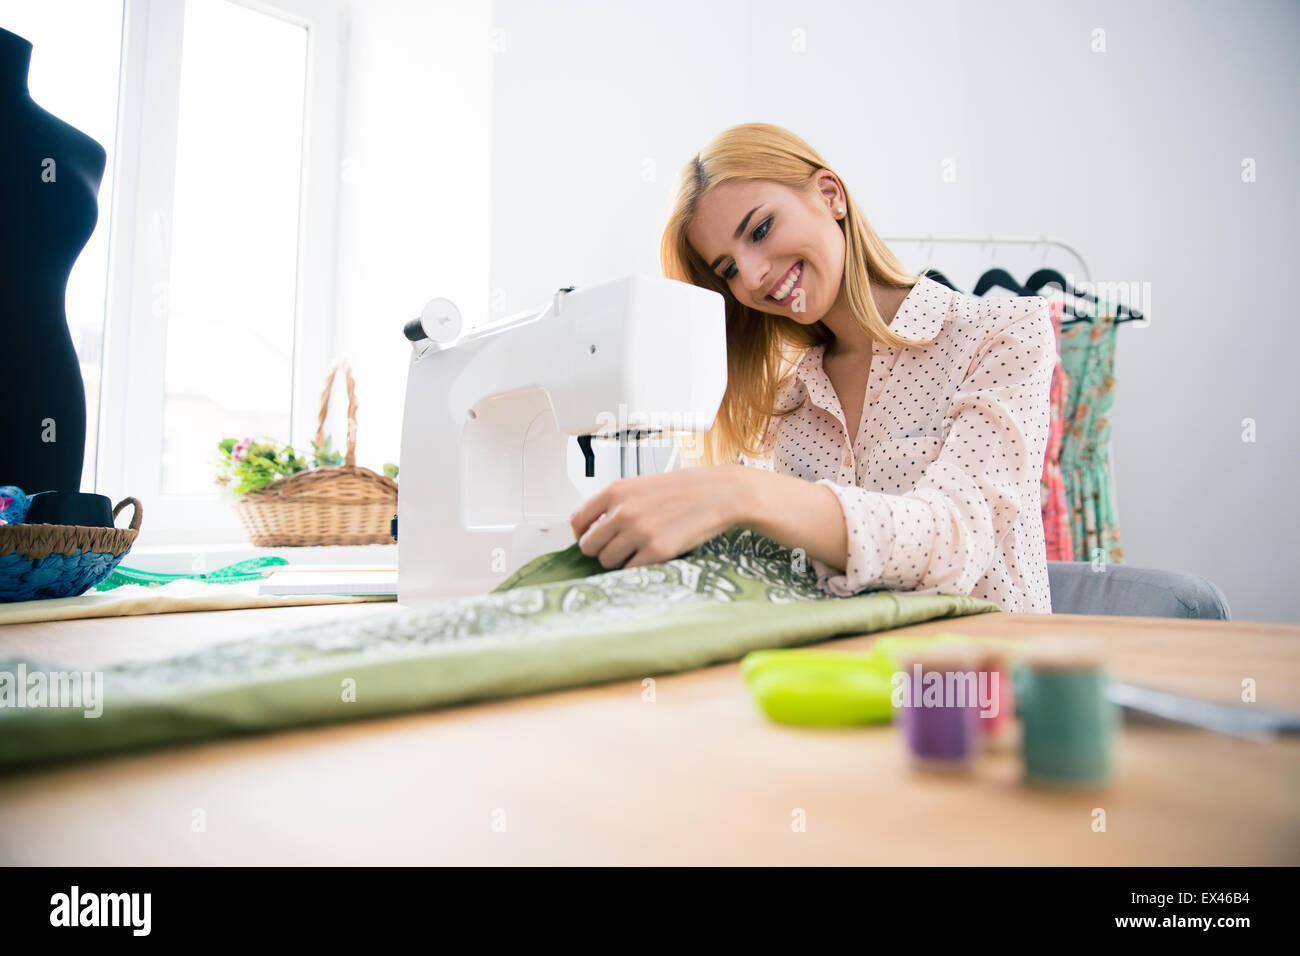 Happy fashion designer working on sewing machine - Stock Image